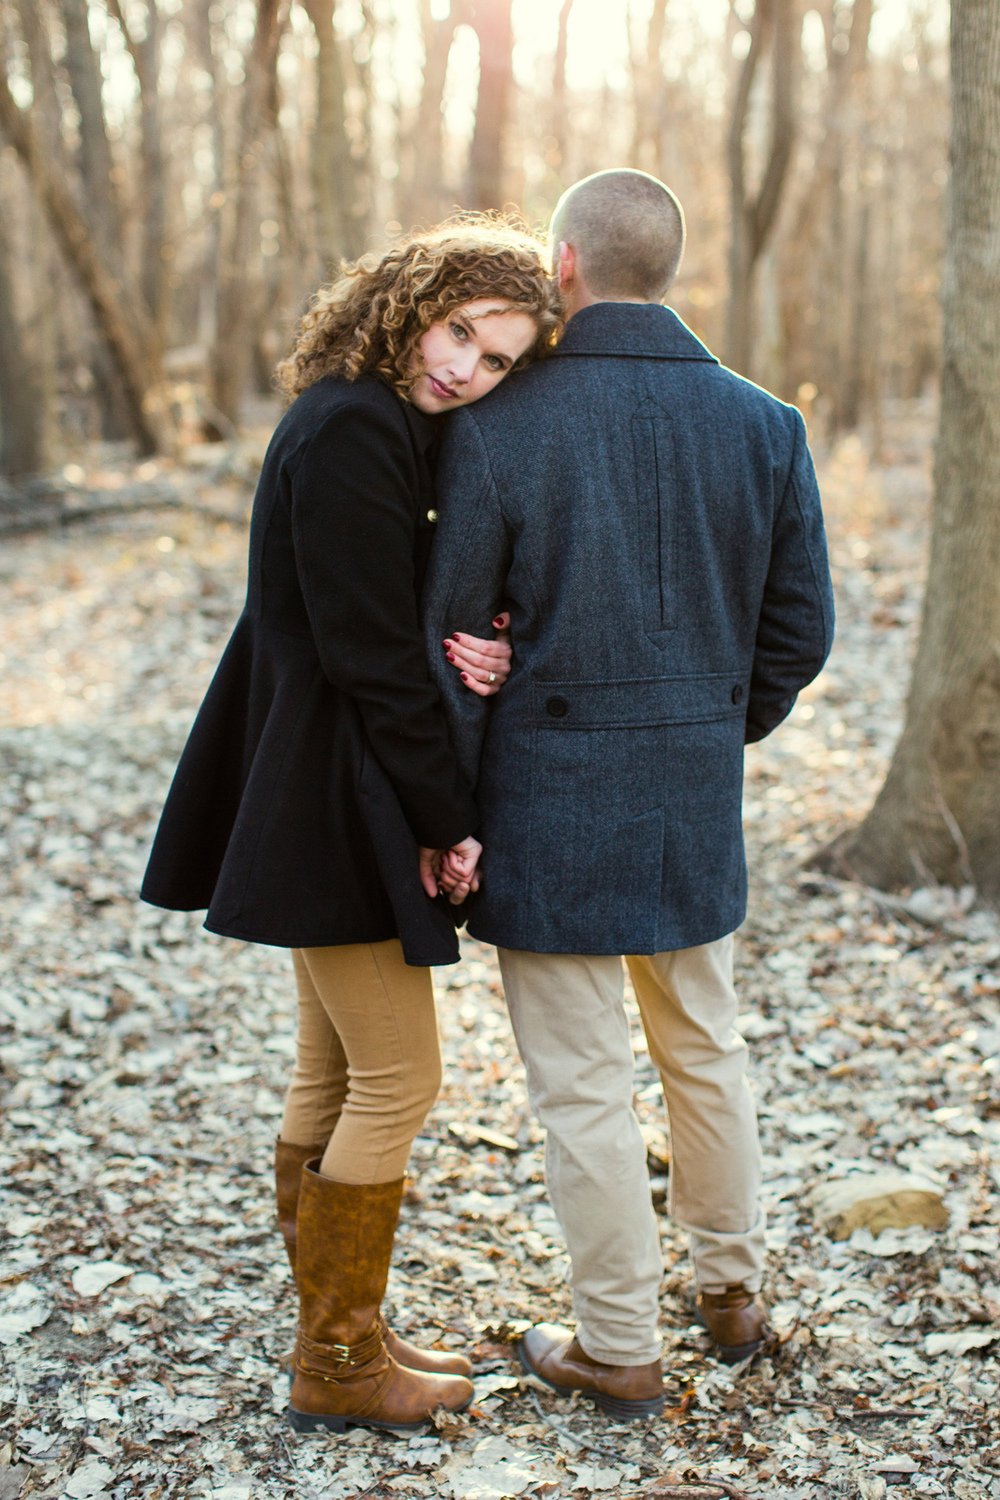 St Charles Historic Main Street Engagement Session_20150110_164407.jpg